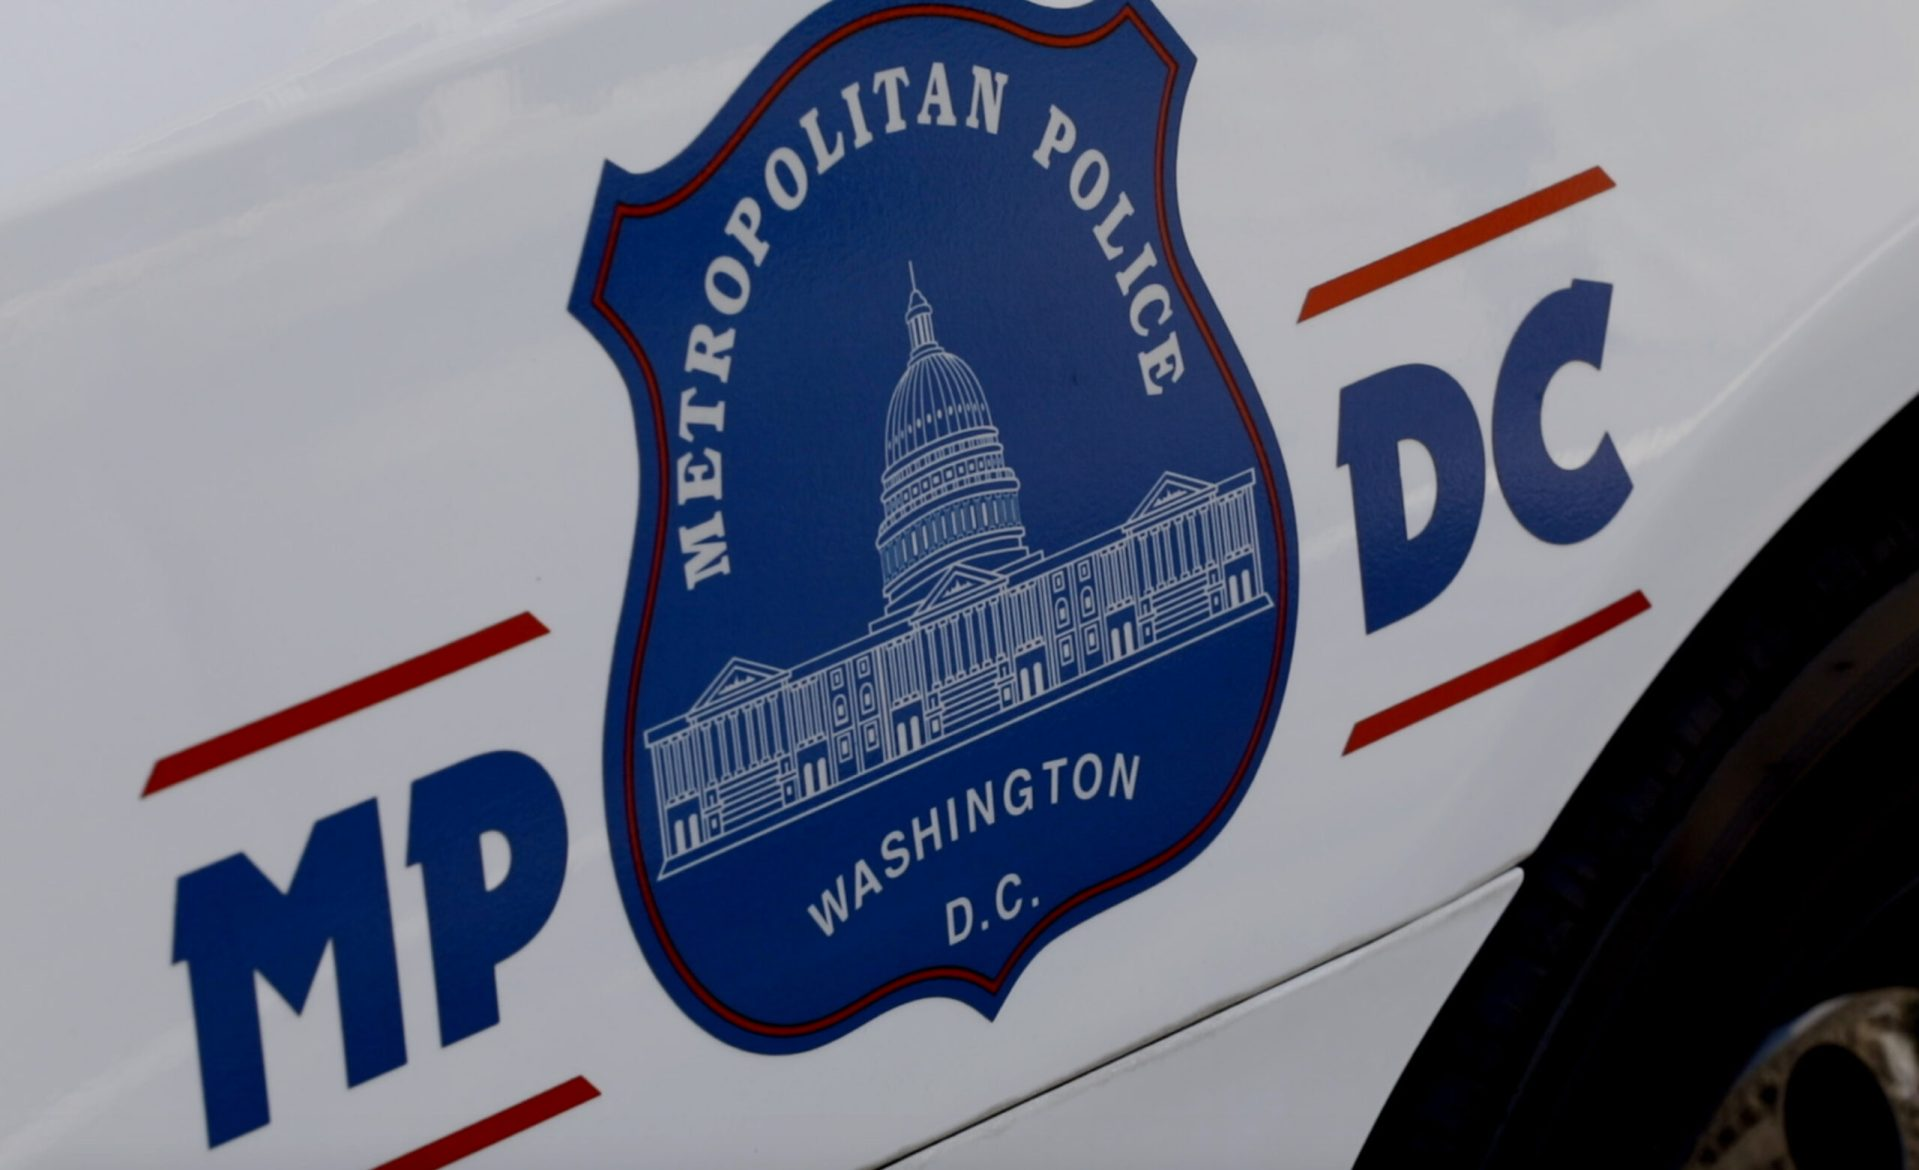 UPDATE: Two D.C. Police Cars Totaled Following An Officer Drag Race (Video)